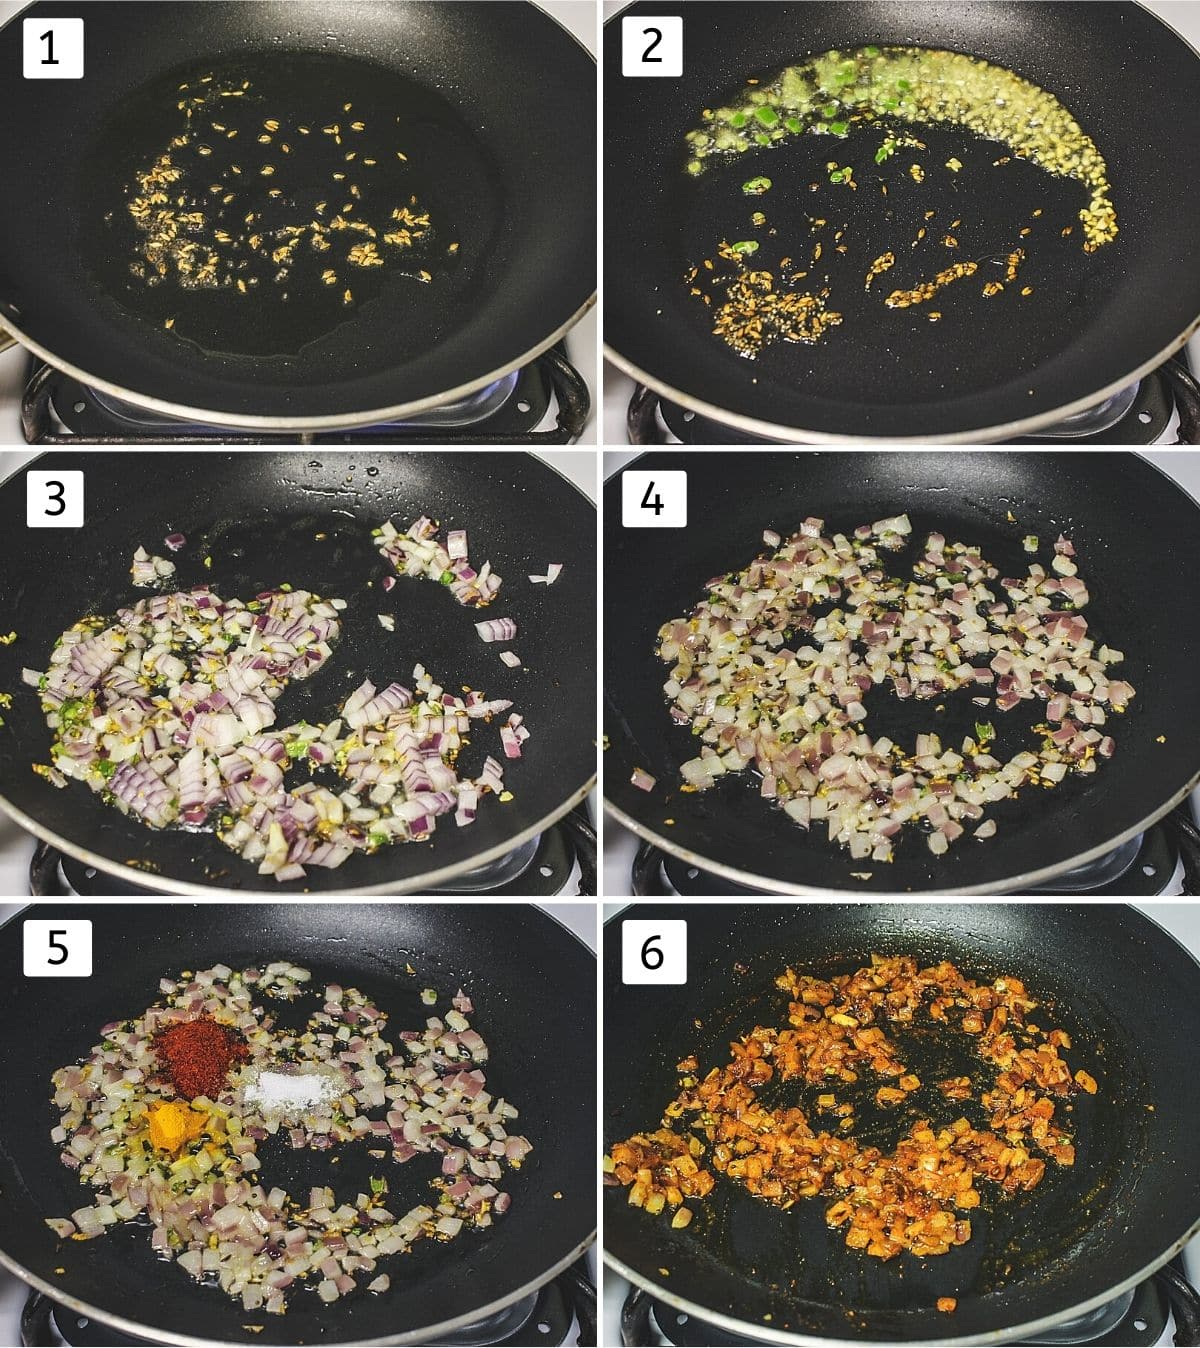 Collage of 6 steps showing mustard, cumin seeds in oil, ginger, chili added, onions added, cooked, adding spices, mixed.